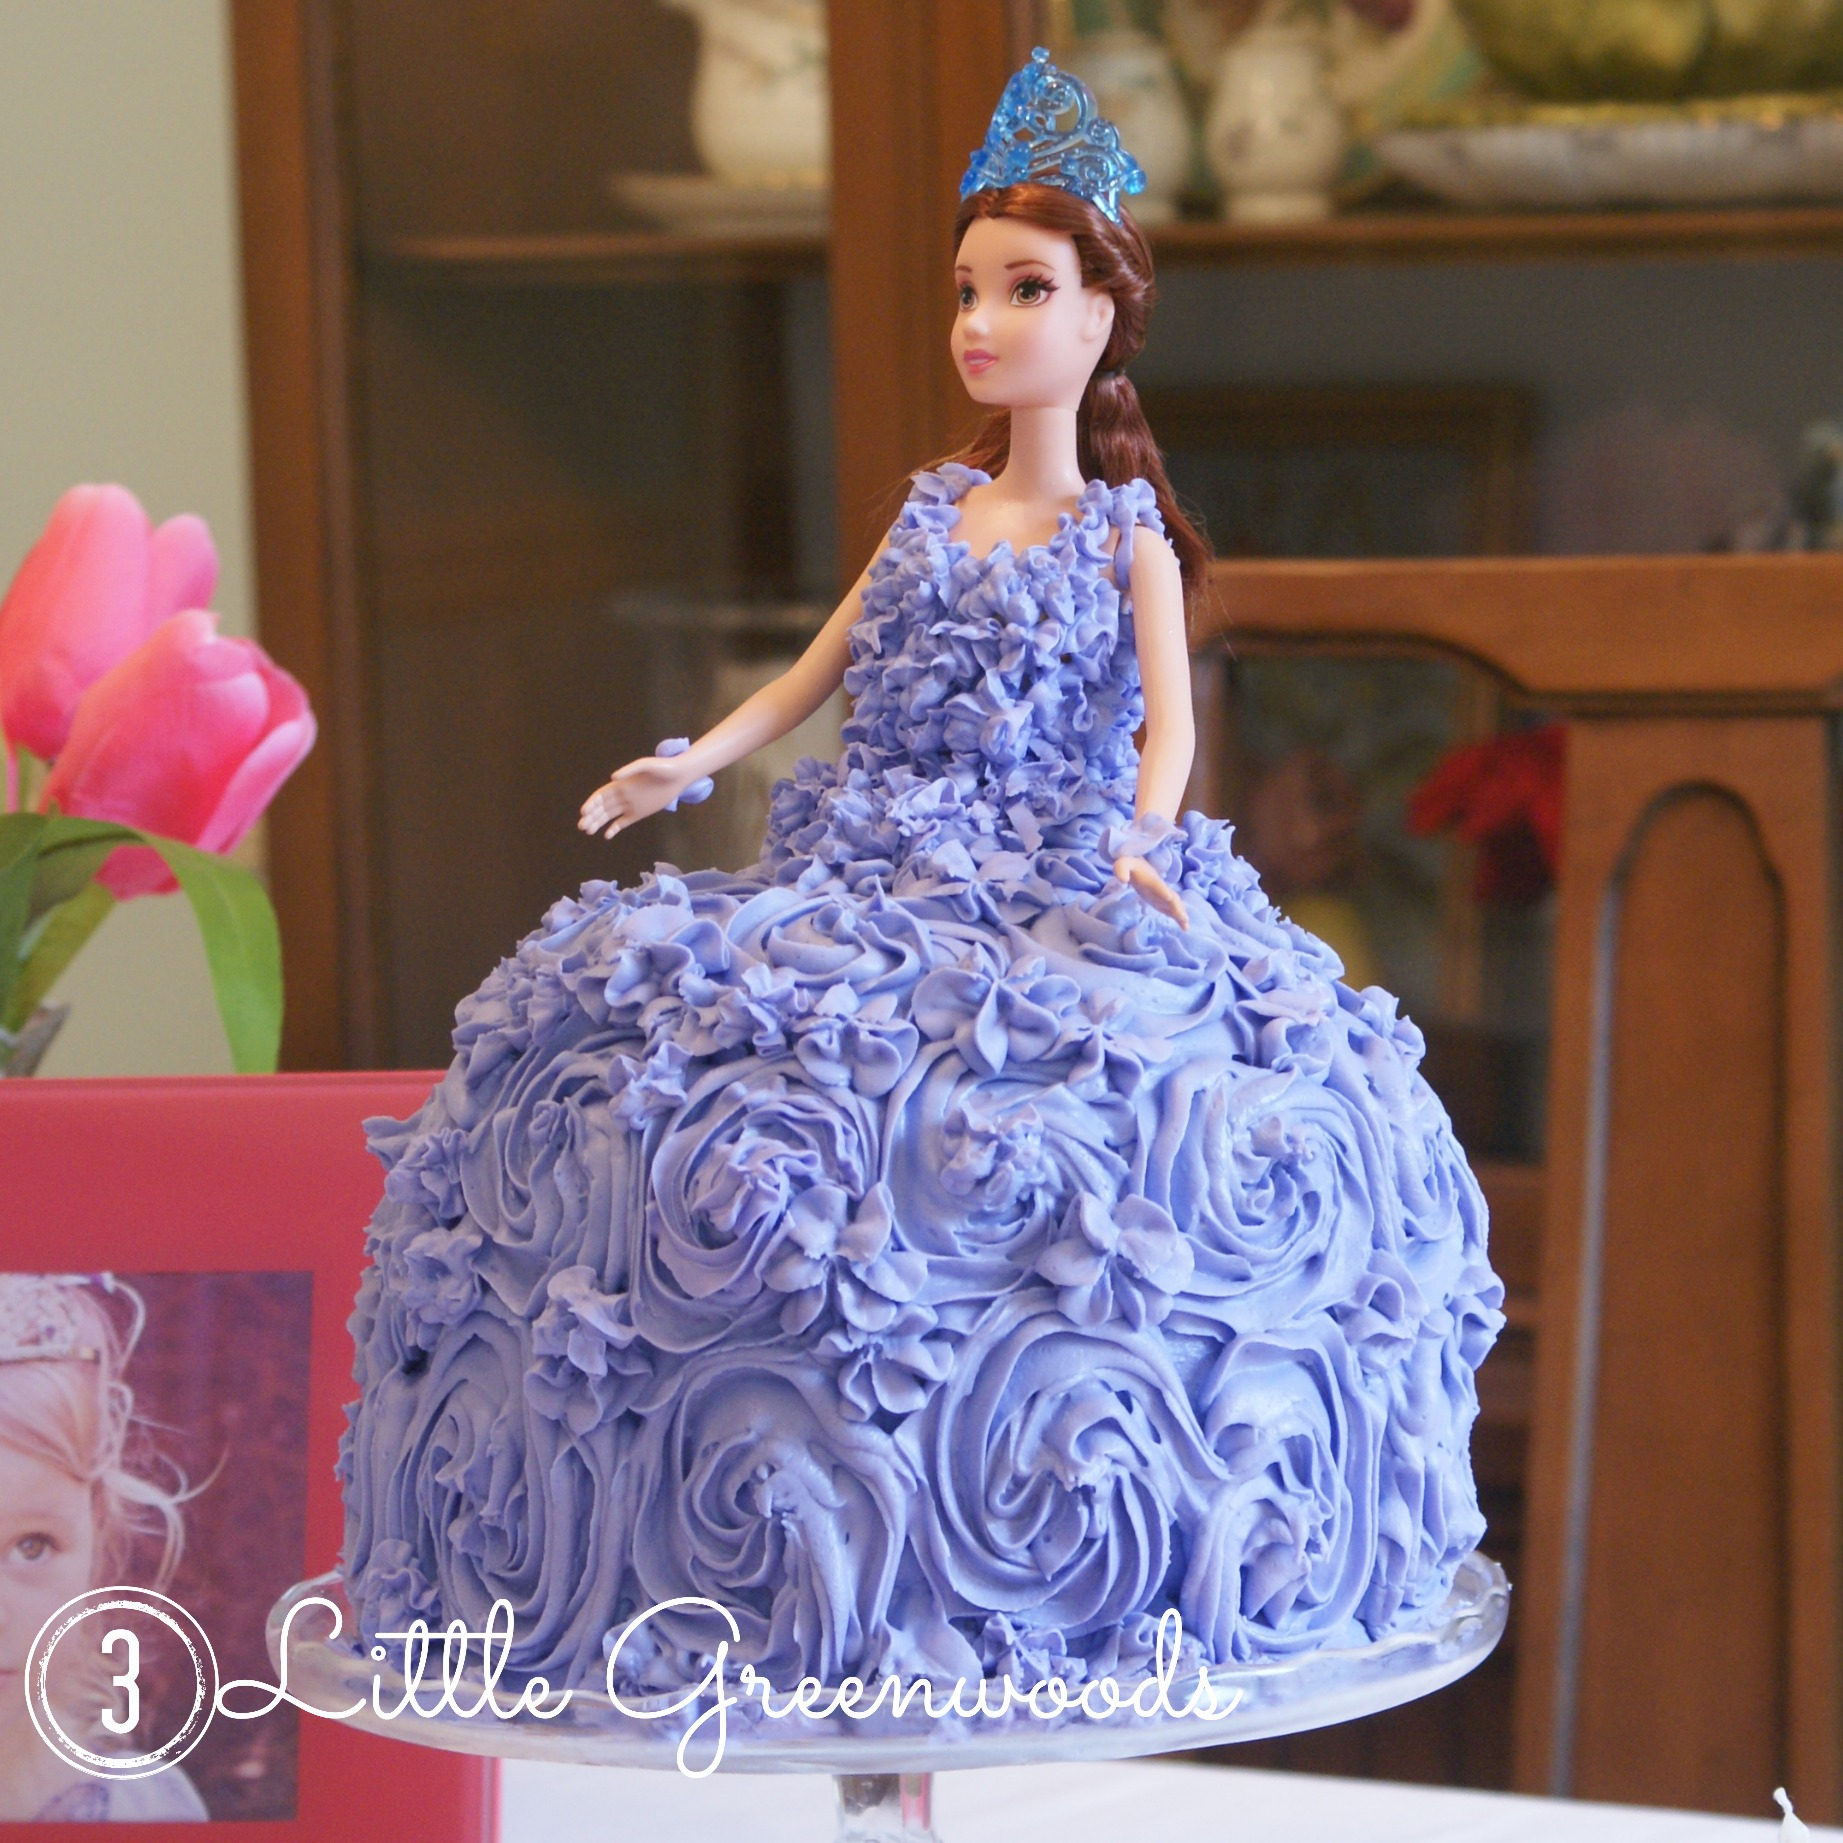 Princess Cake for a Sofia the First Birthday Party